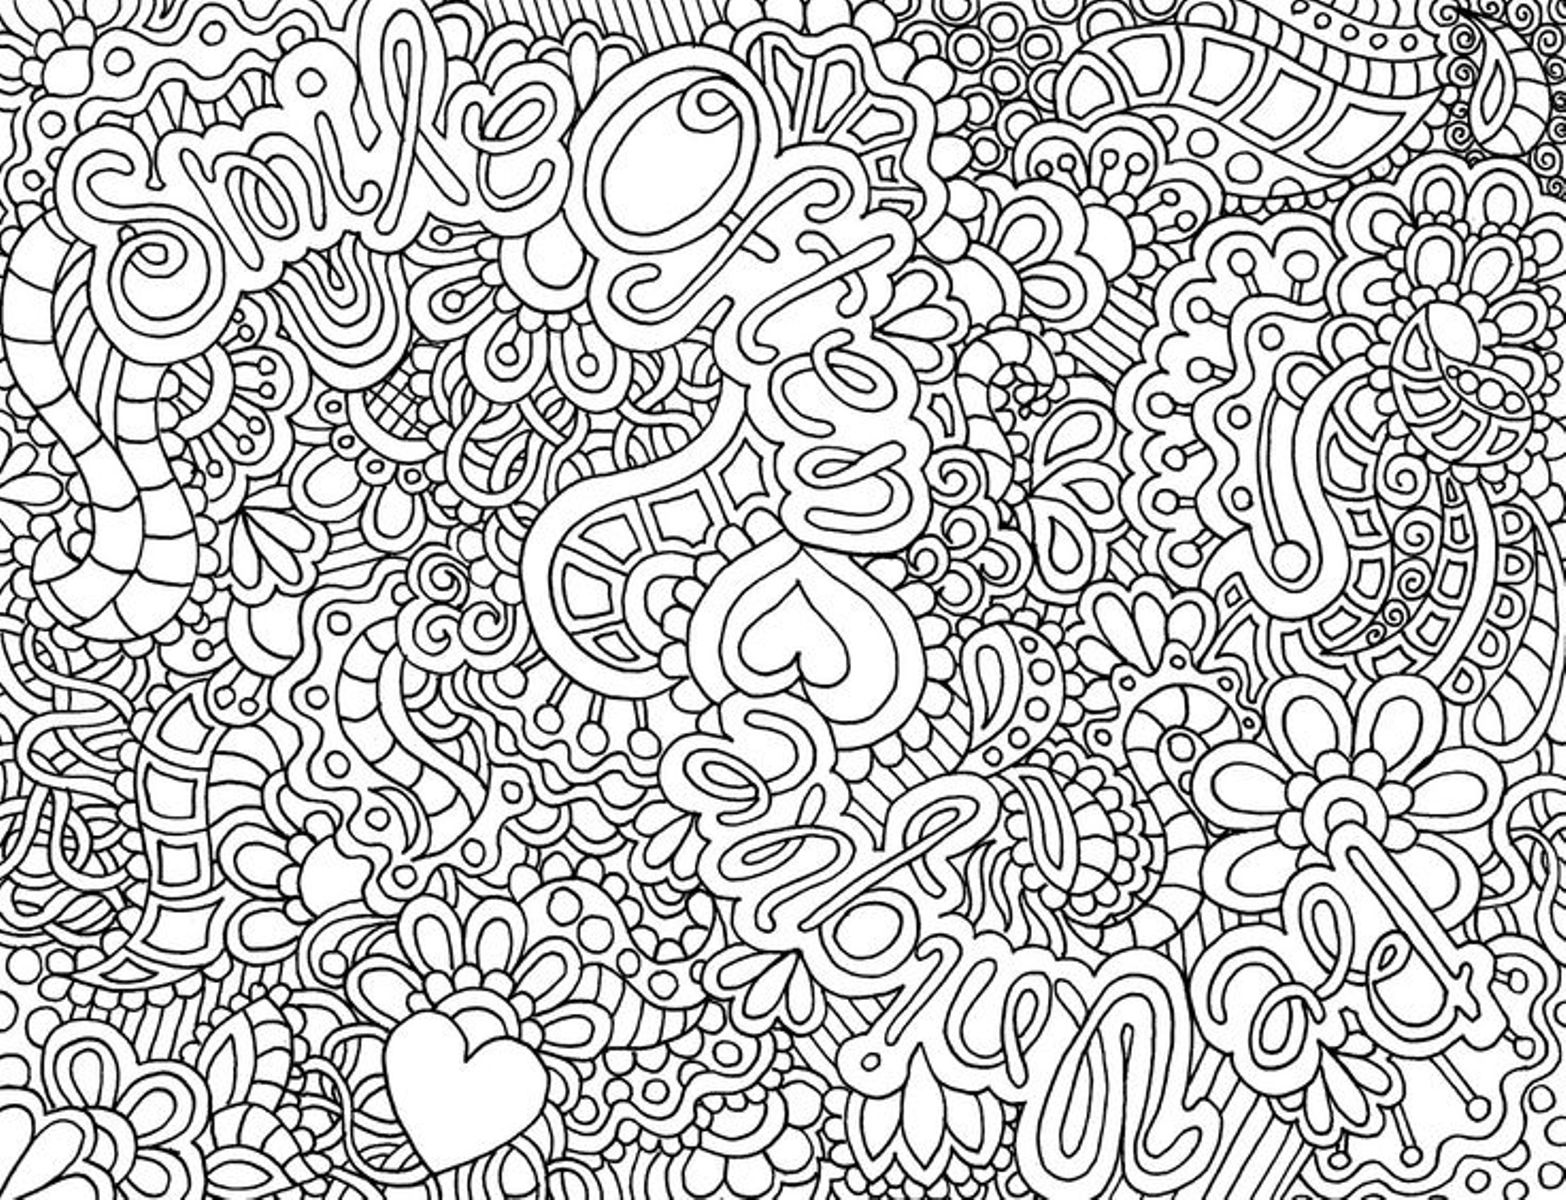 detailed coloring pages - Difficult Coloring Pages